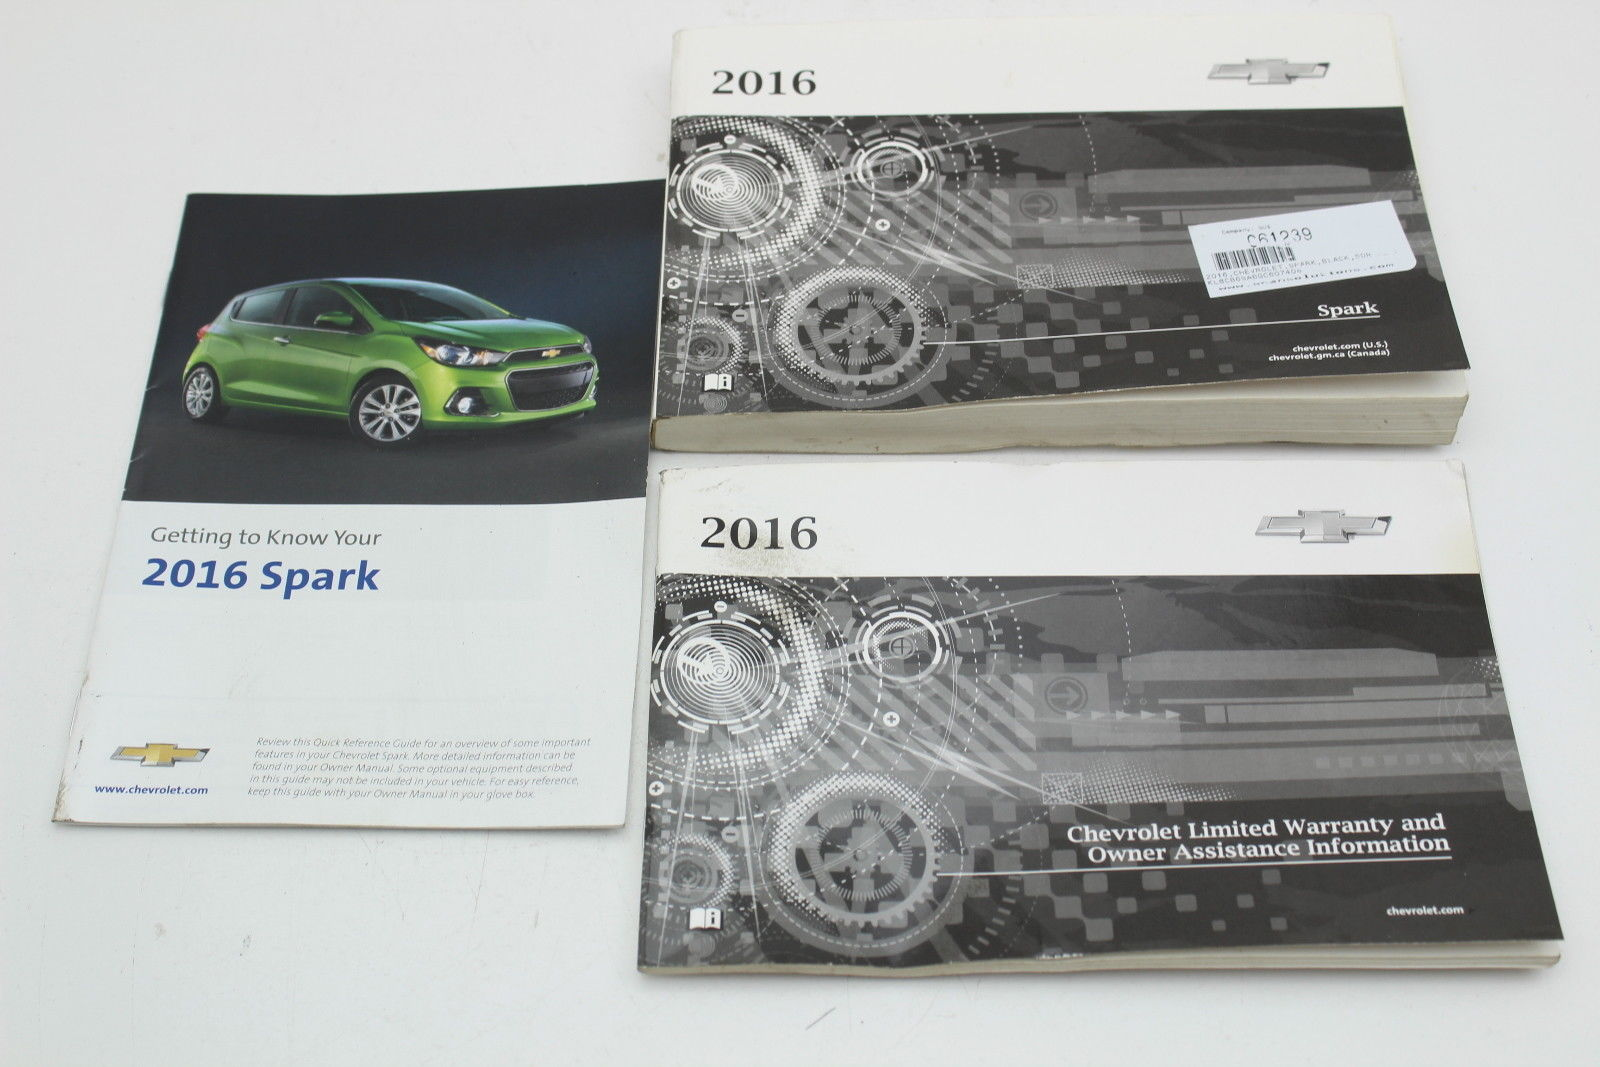 13 chevrolet spark vehicle owners manual and 50 similar items rh bonanza com Used Chevy Spark Chevy Spark Dashboard